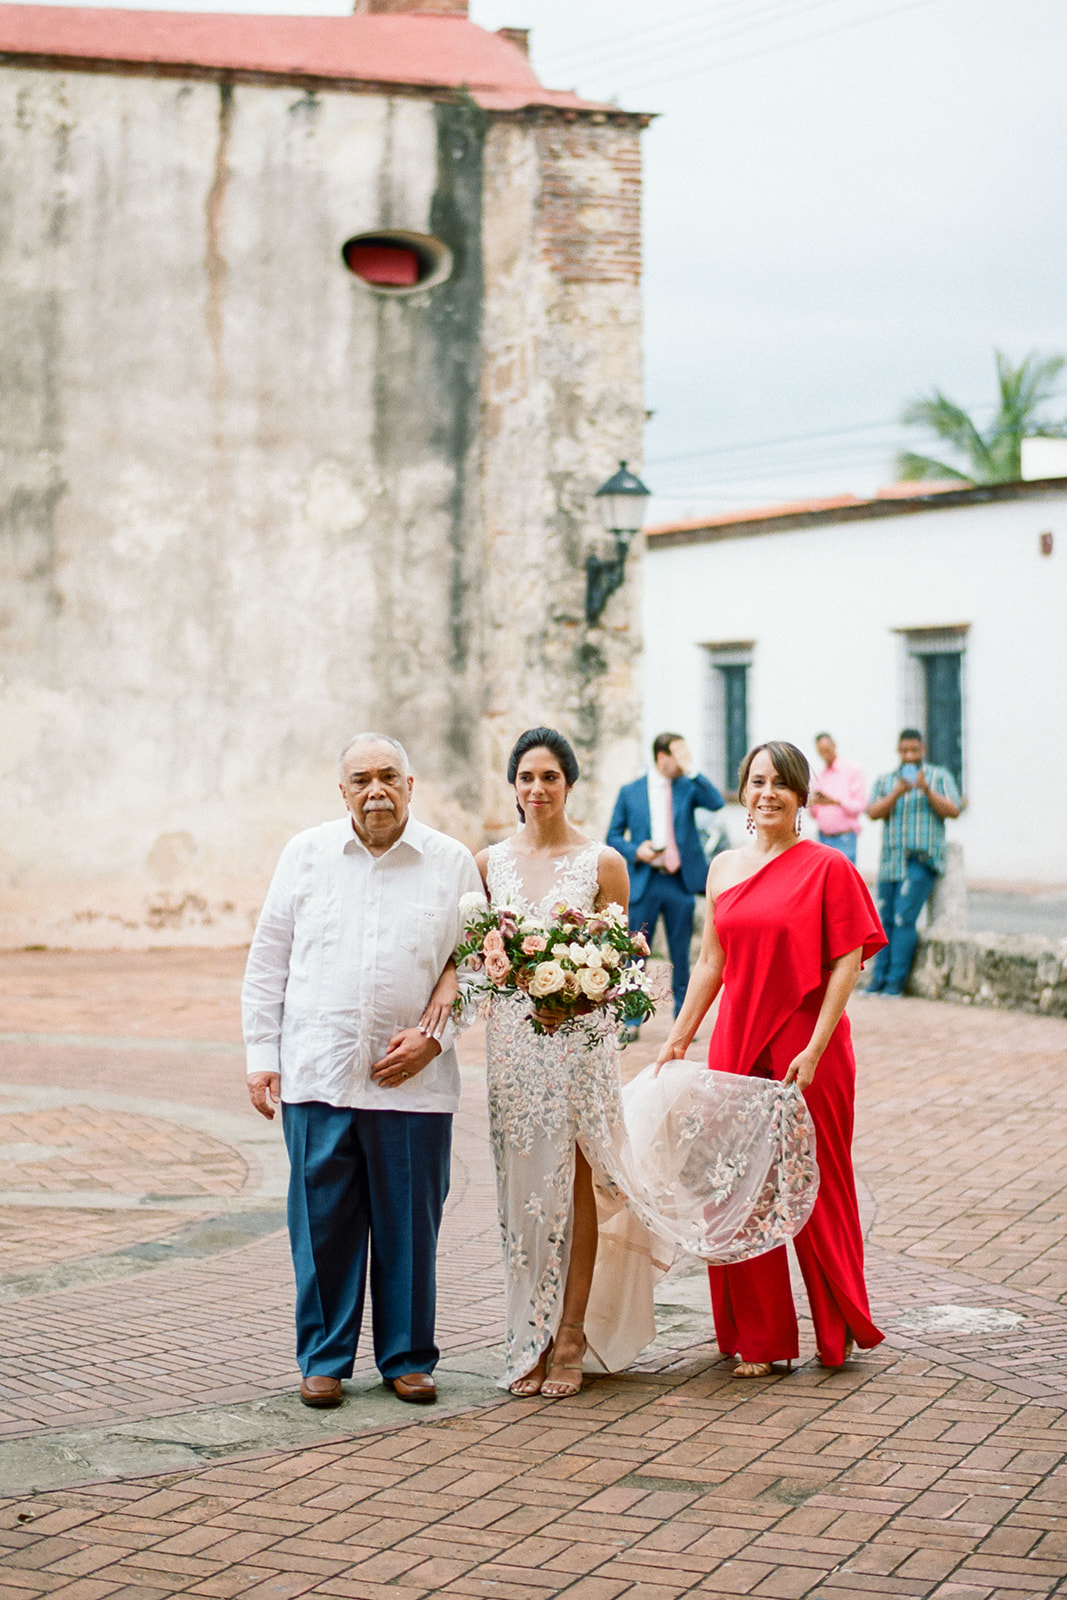 V + C Santo Domingo, Dominican Republic | DC Wedding Florist | Wedding Florist | Sophie Felts Floral Design